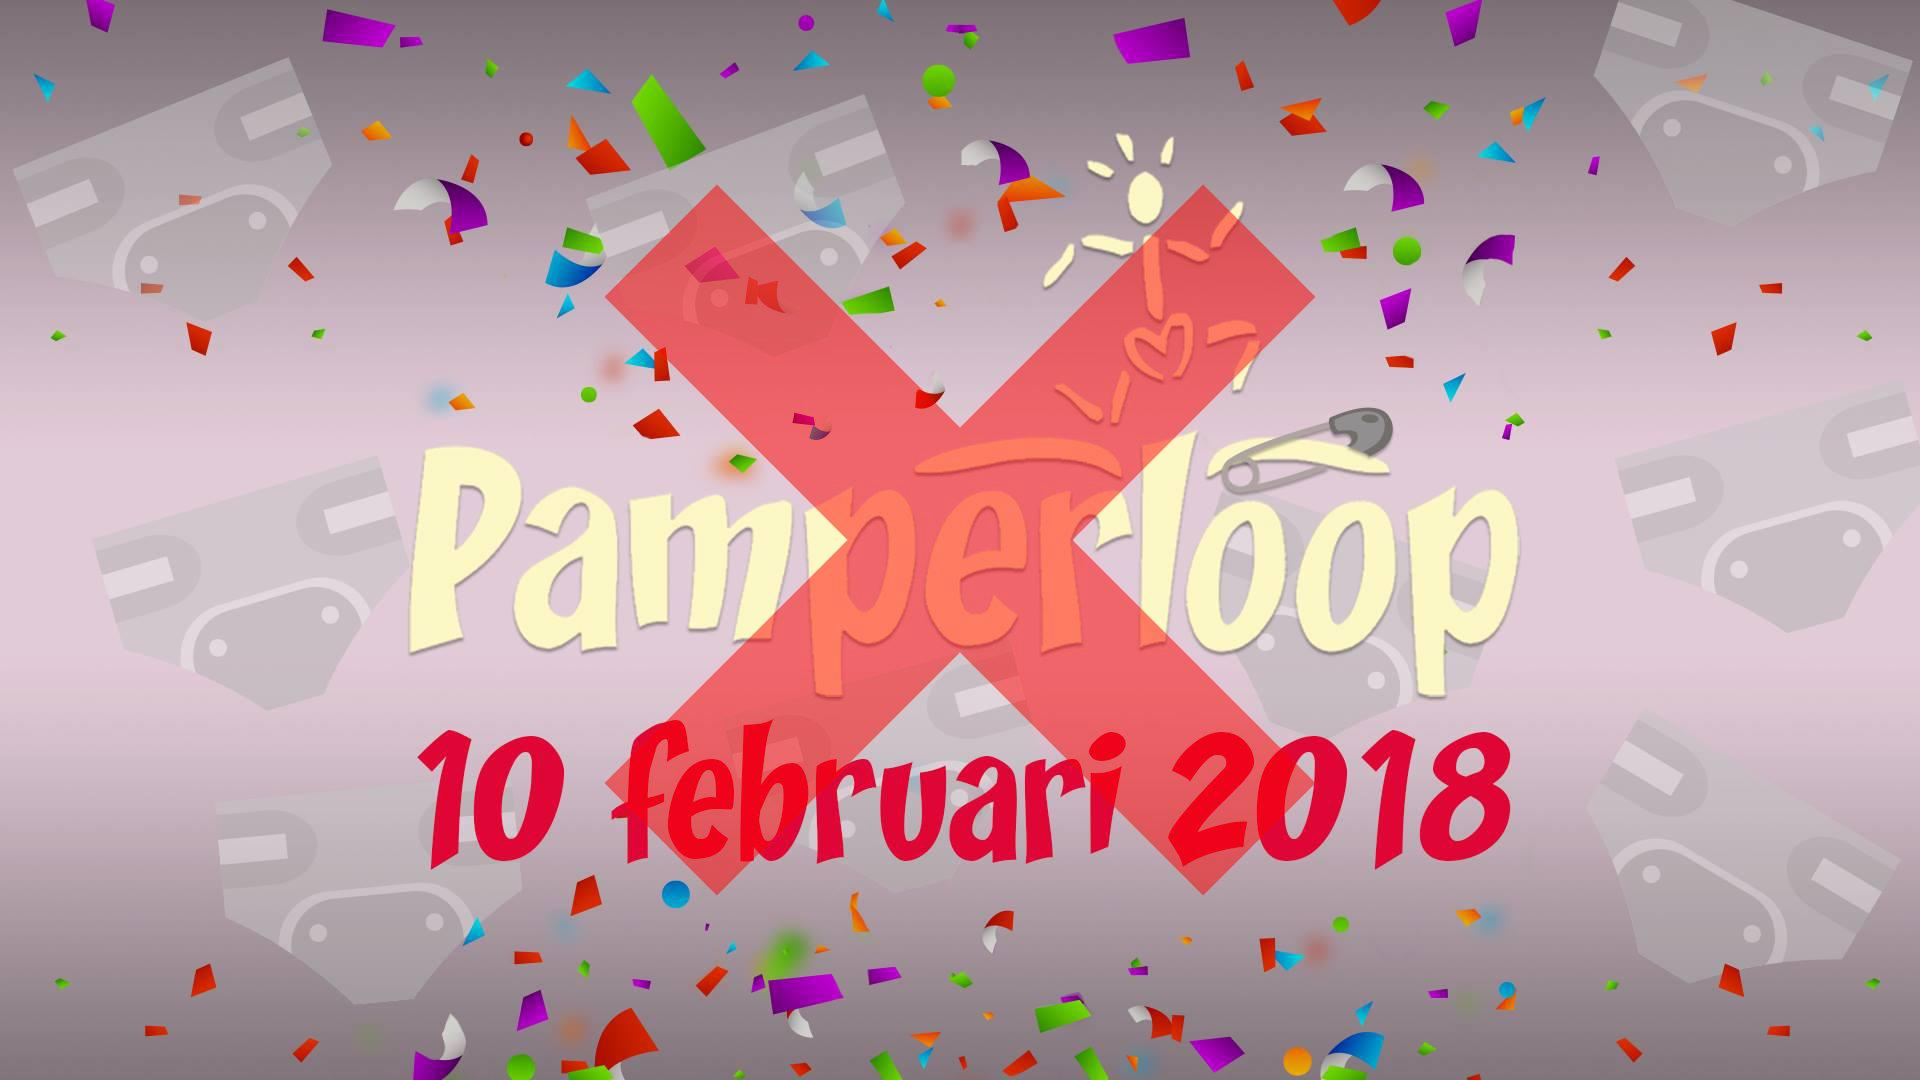 Pamperloop afgelast